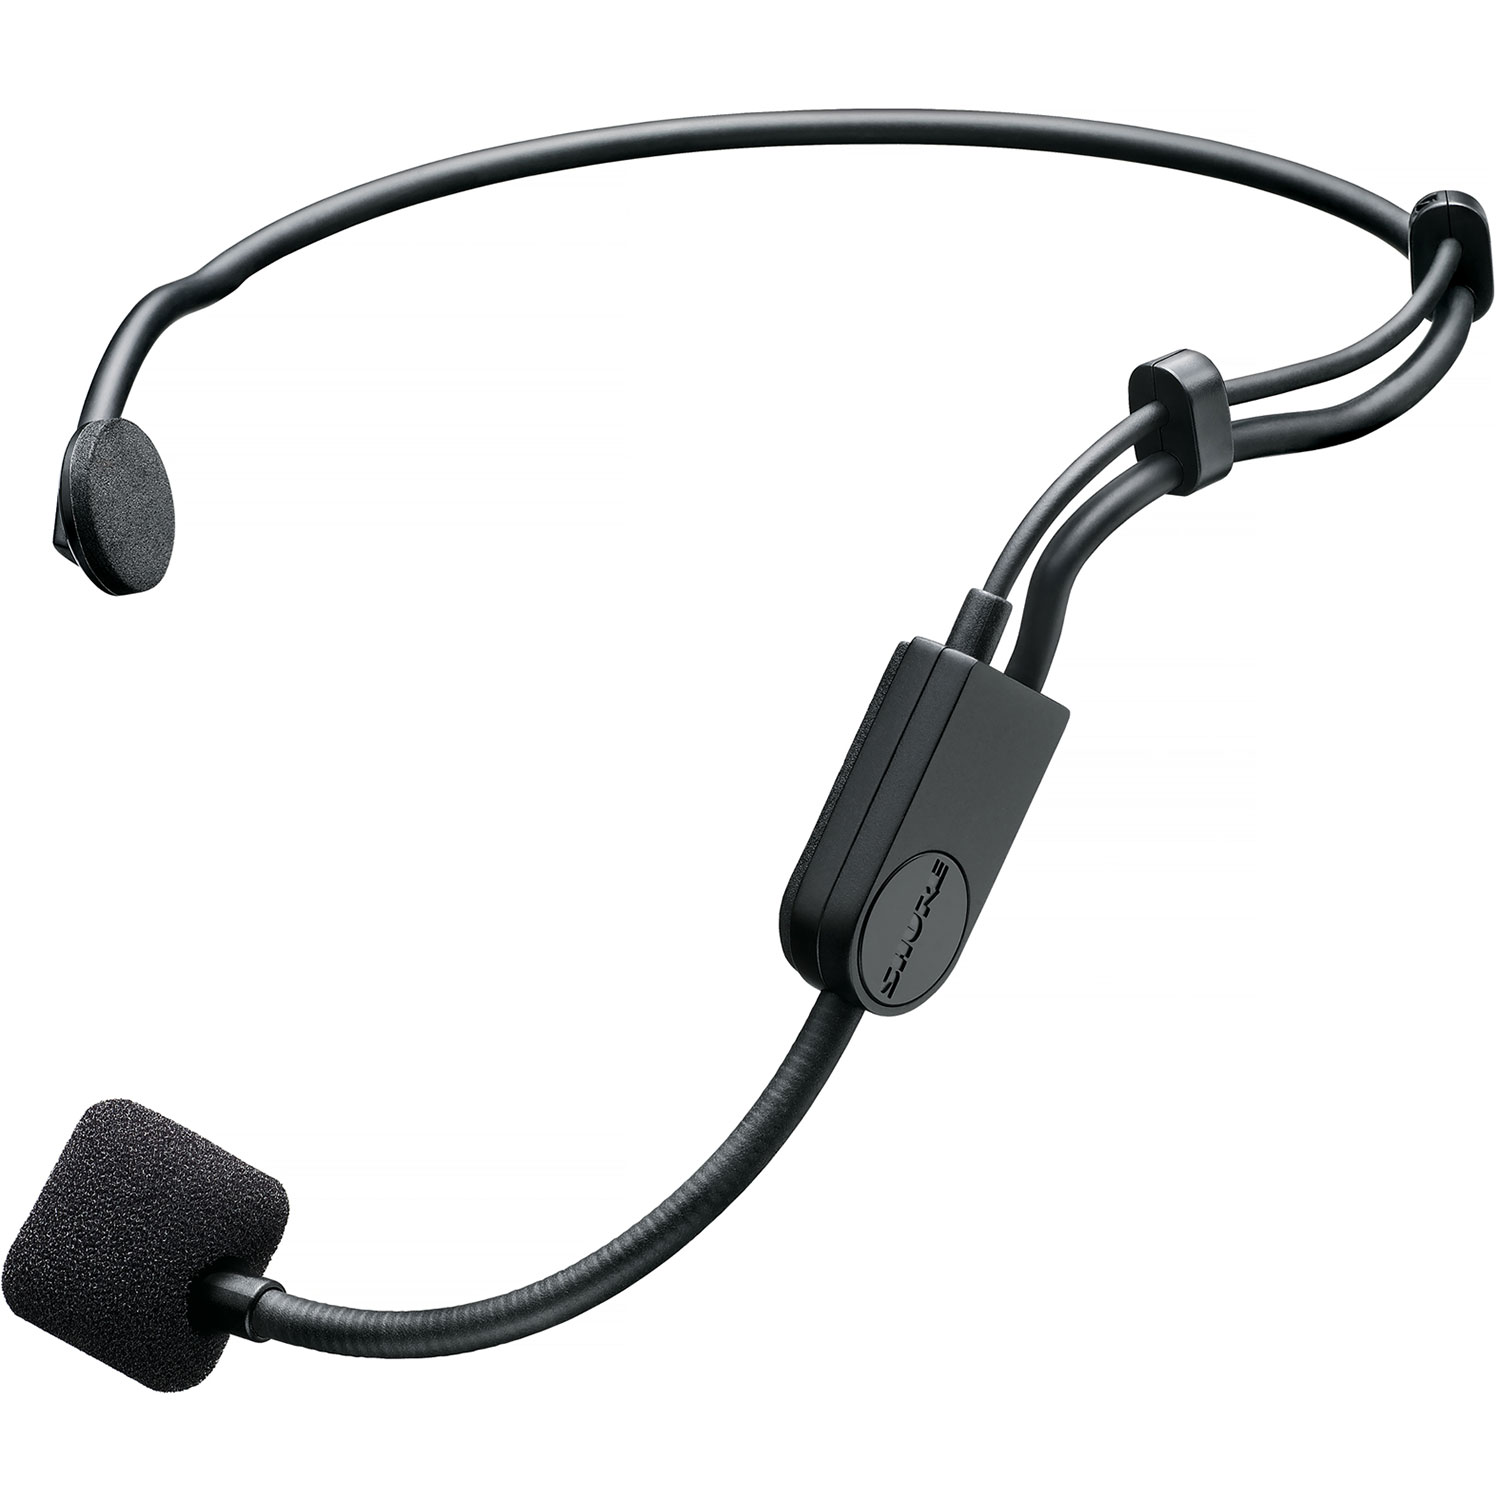 Shure Wireless Headset Condenser Microphone